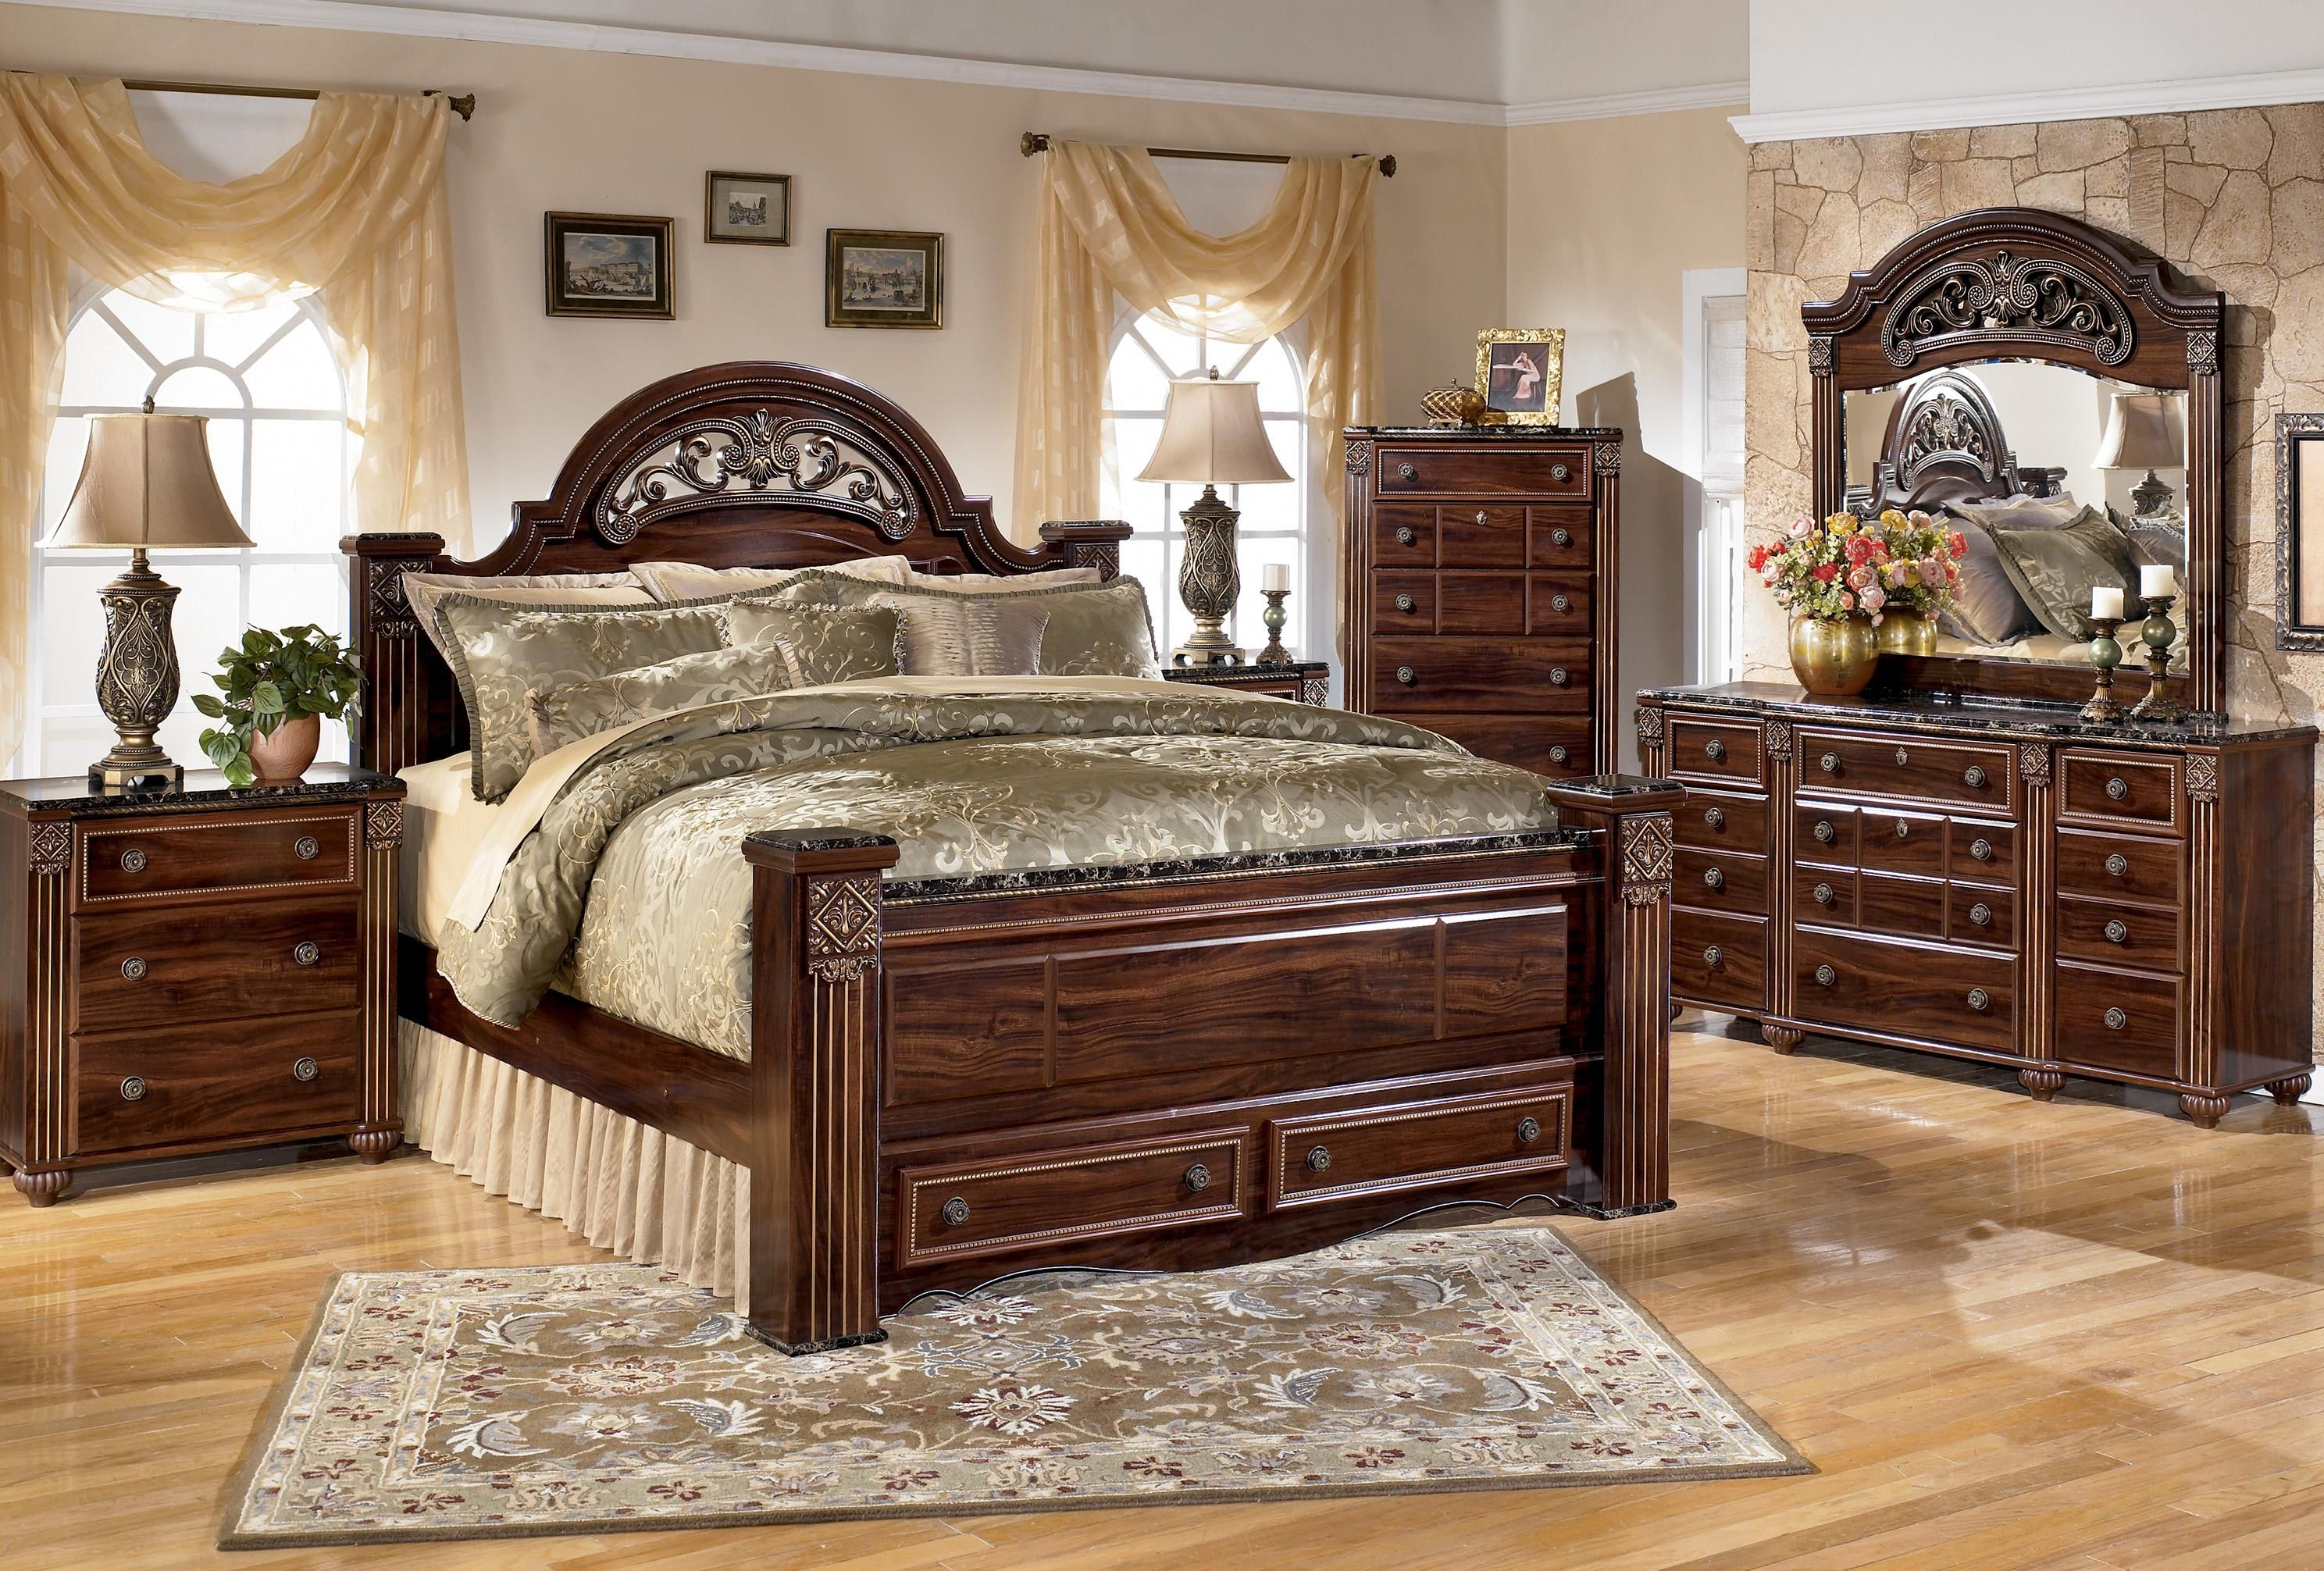 New Bedroom Set Gabriela King Bedroom Group By Signature Design By Ashley The